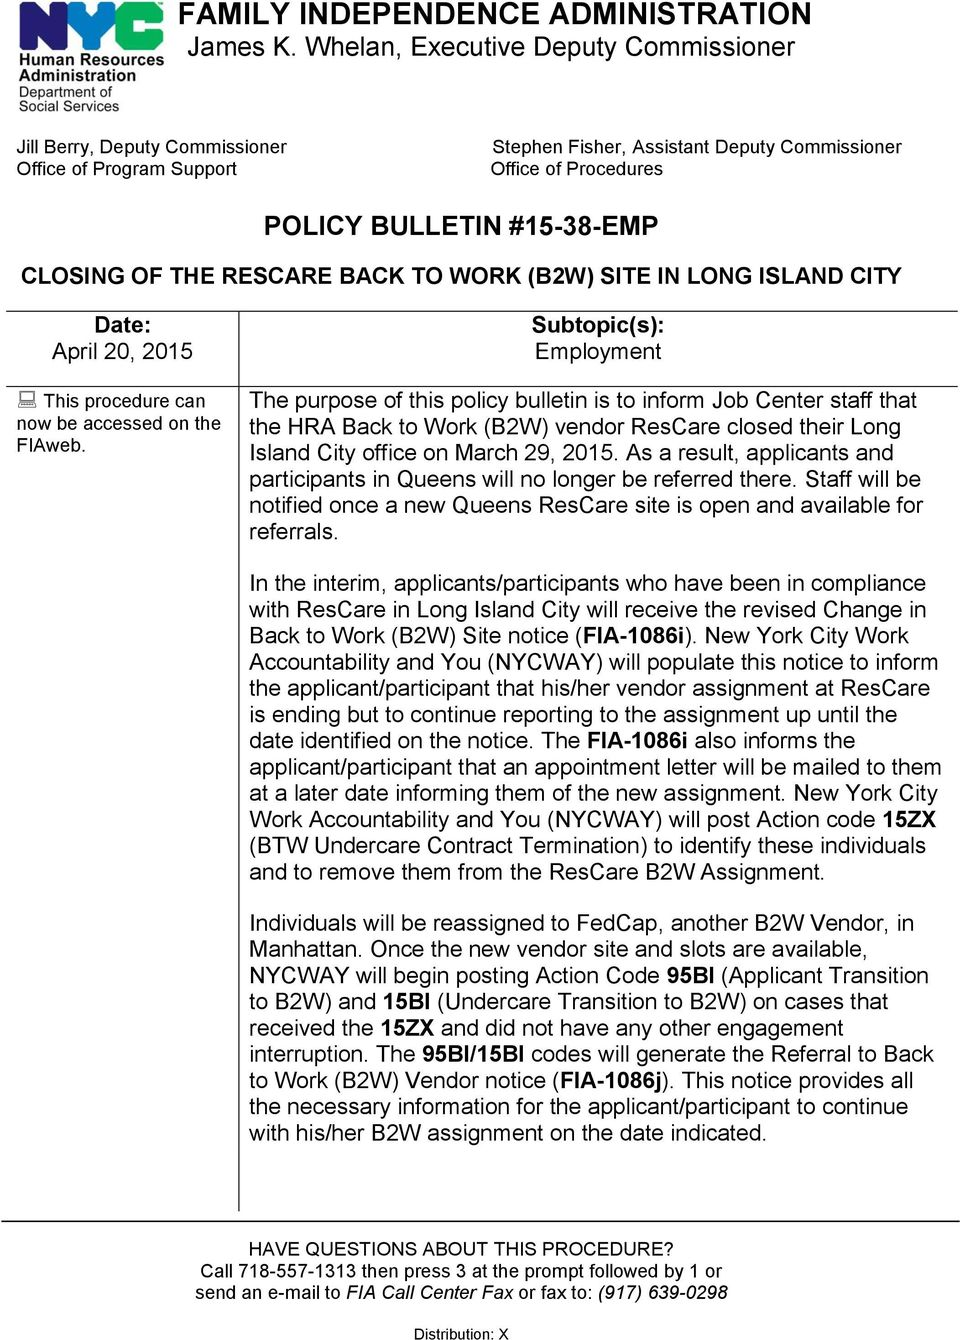 OF THE RESCARE BACK TO WORK (B2W) SITE IN LONG ISLAND CITY Date: April 20, 2015 This procedure can now be accessed on the FIAweb.